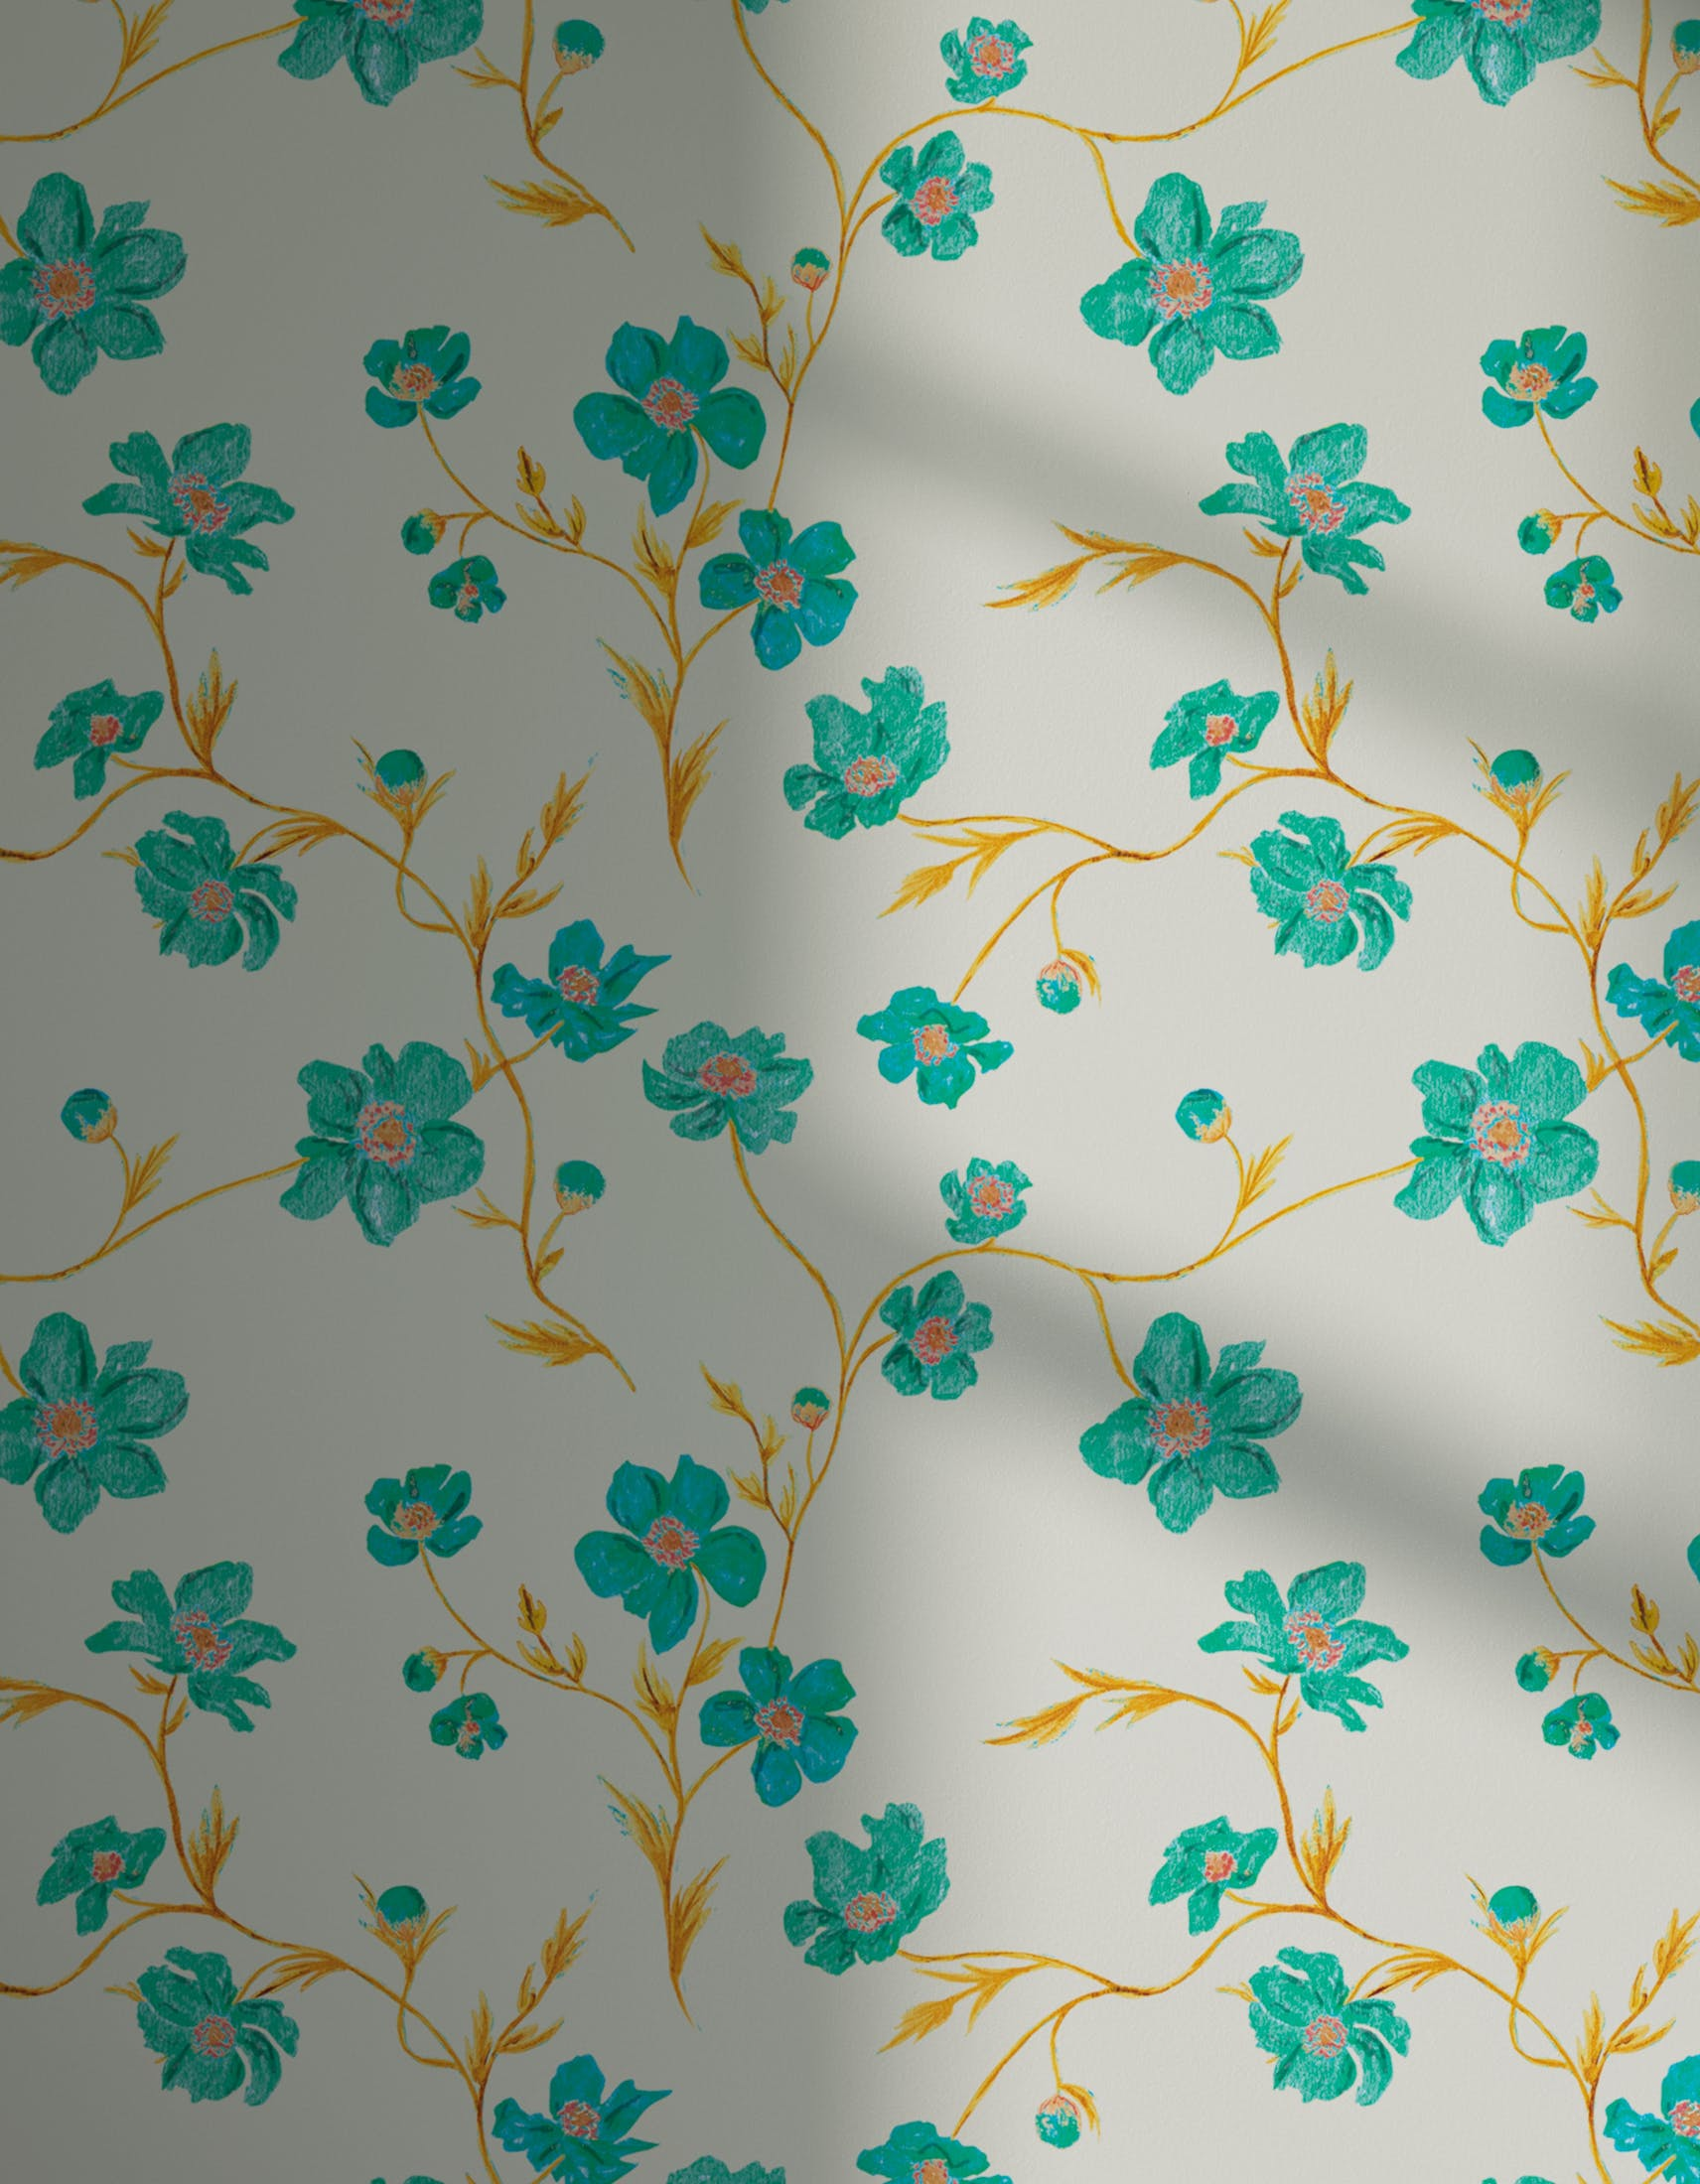 Lick x Jenna Hewitt Anemone 01 turquoise floral wallpaper with shadow